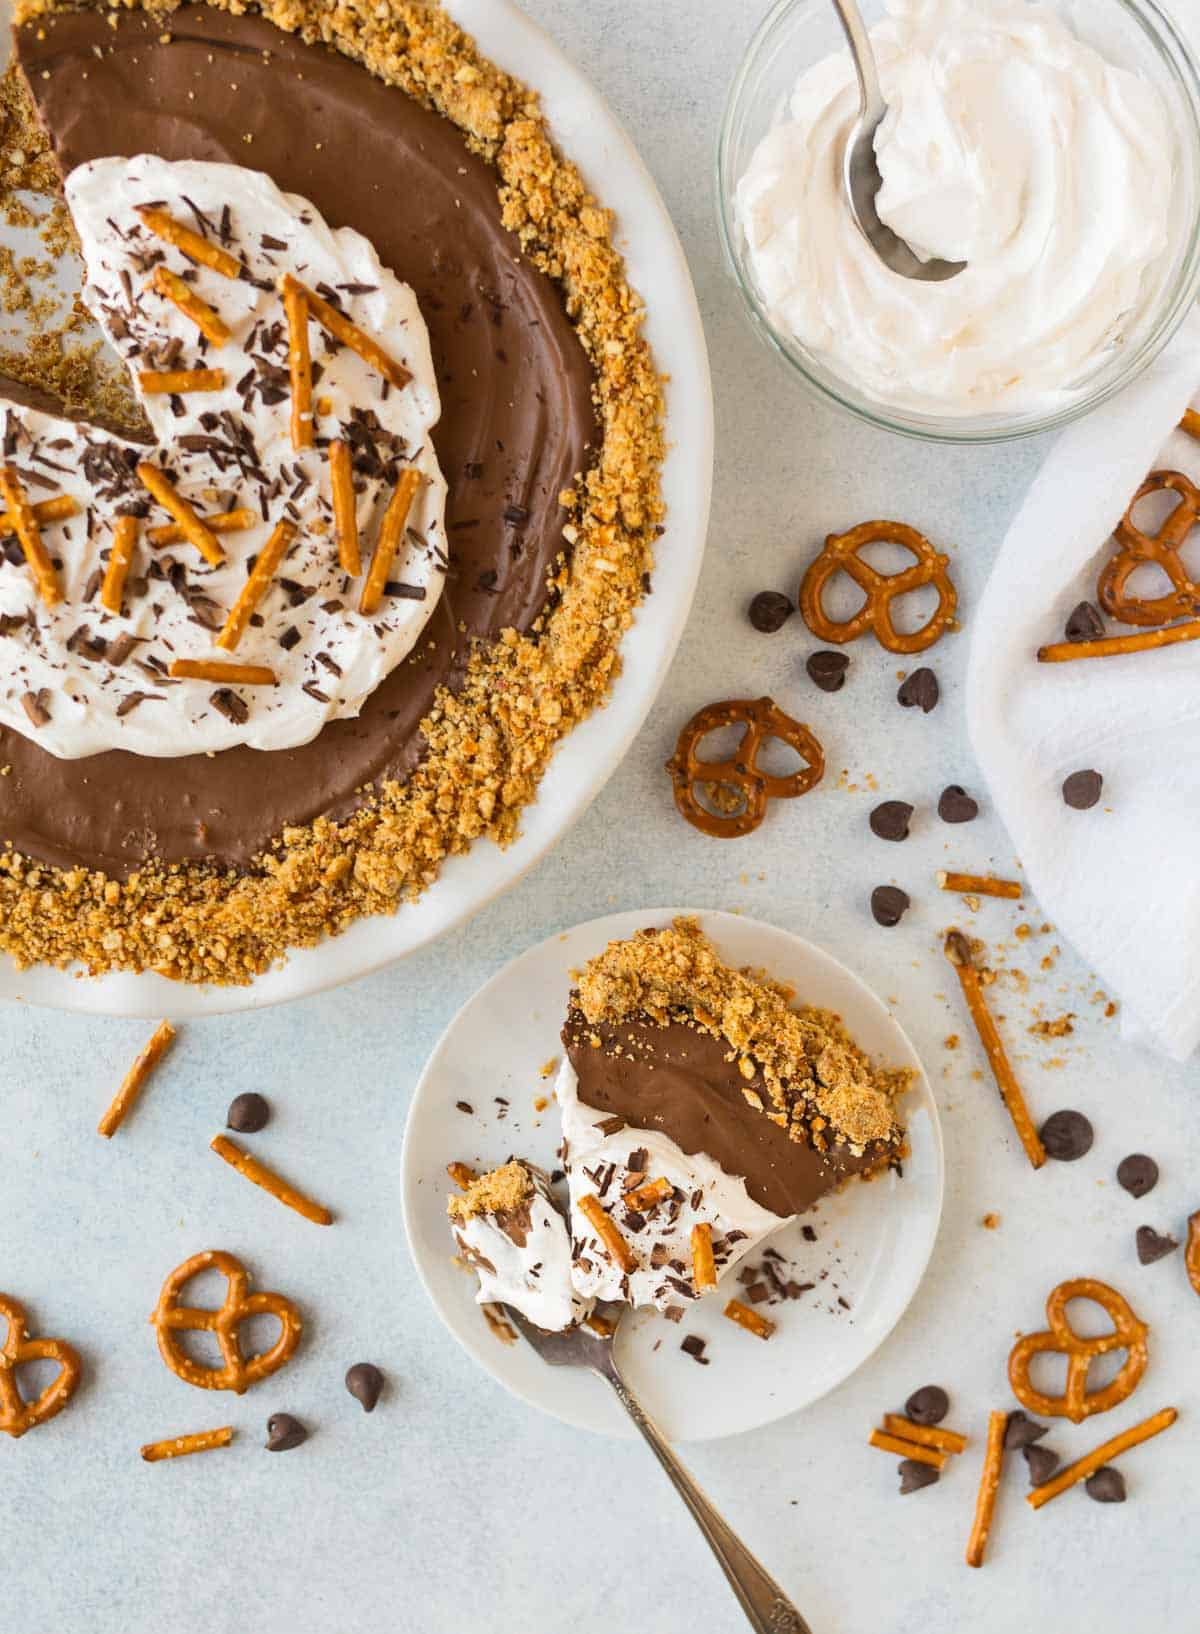 Easy Vegan Chocolate Mousse Pie surrounded by a bowl of vegan whipped cream, pretzels and chocolate chips